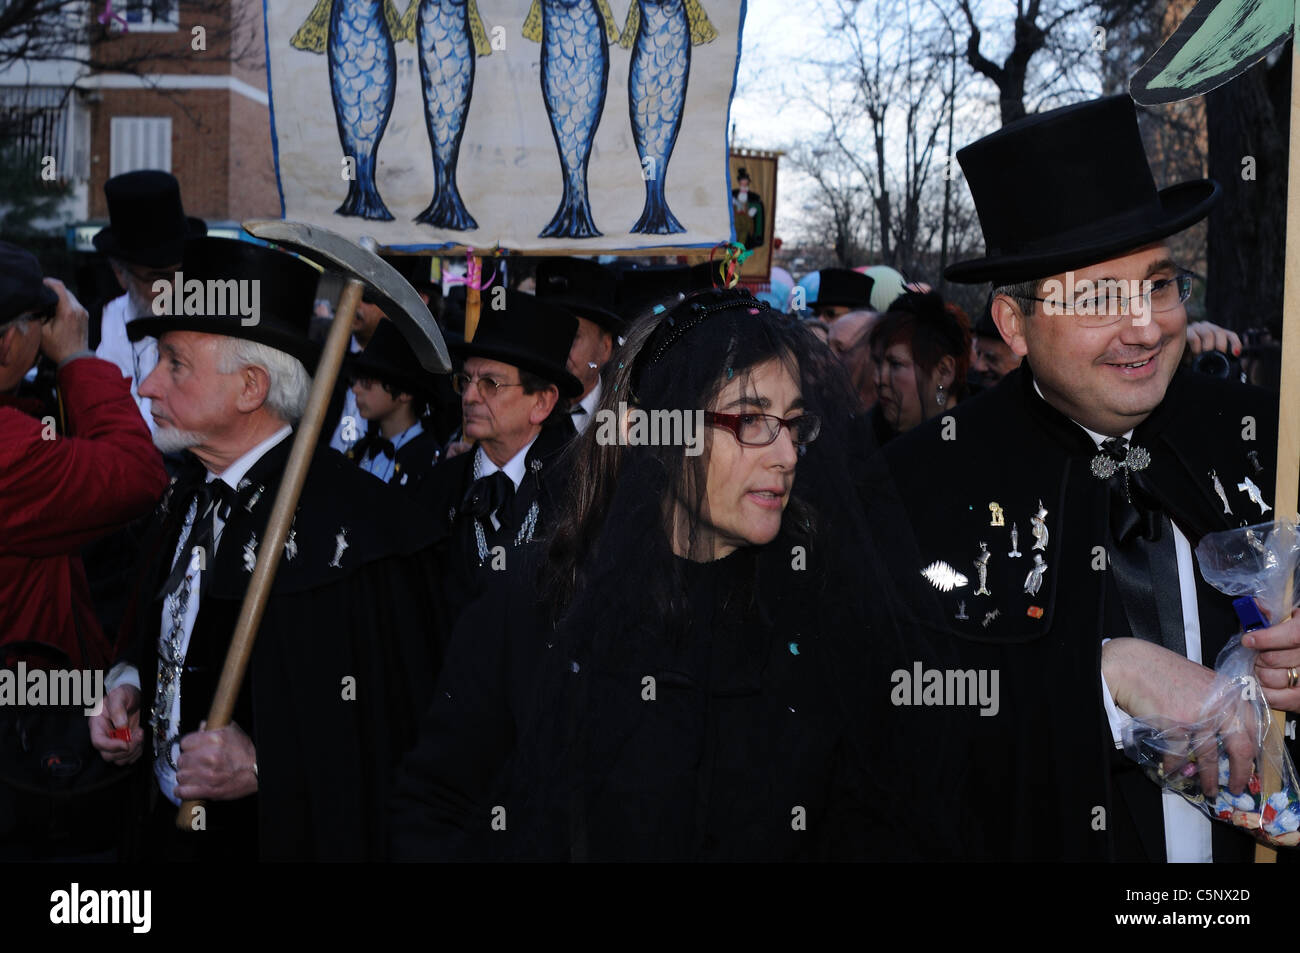 ' Burial of the Sardine' End of Carnival in MADRID .Community of Madrid. SPAIN - Stock Image